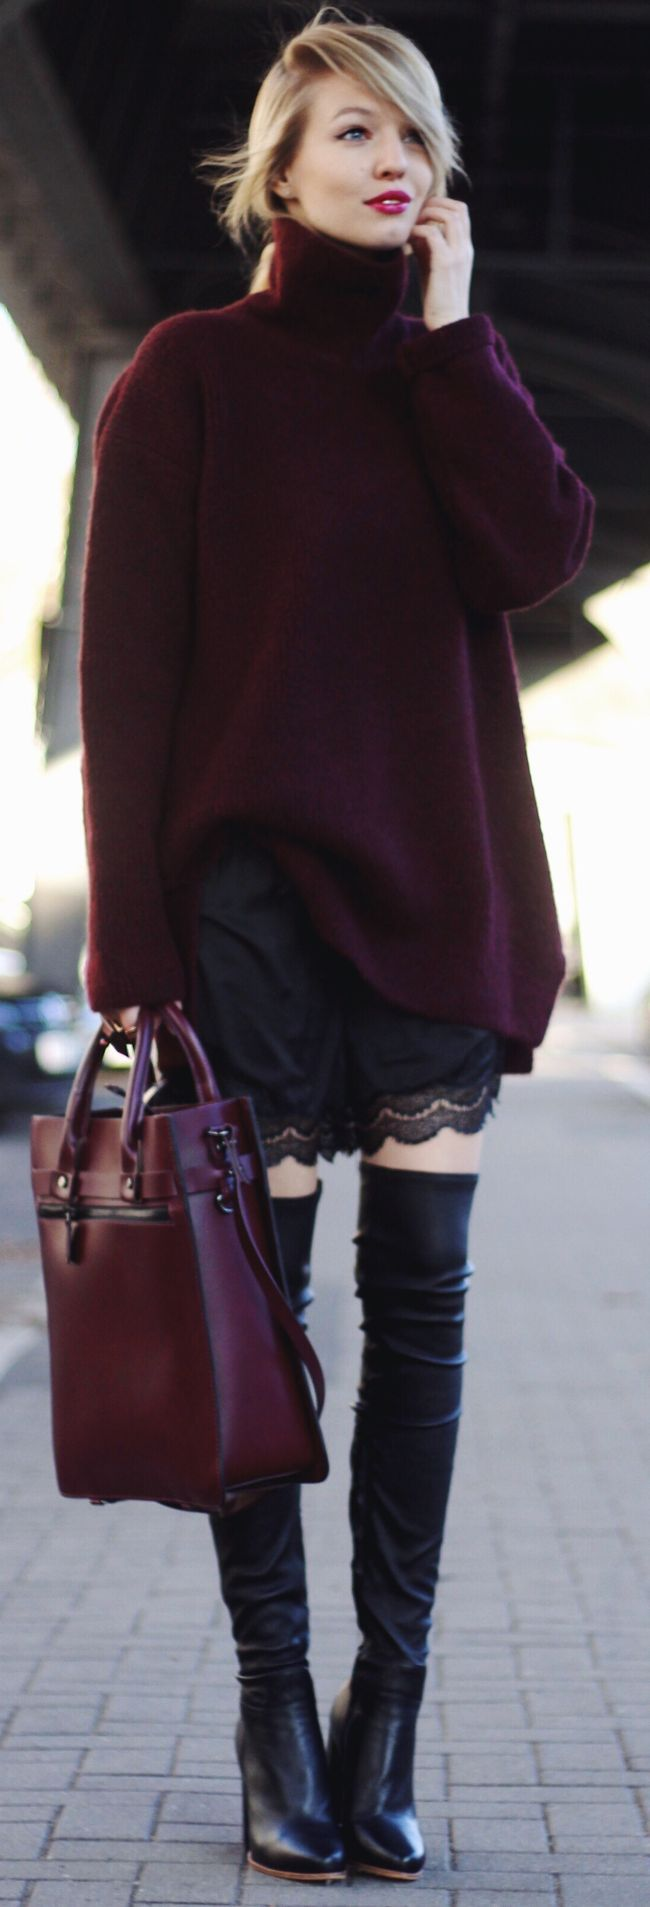 Ooh Couture Burgundy And Black Fall Street Style Inspo